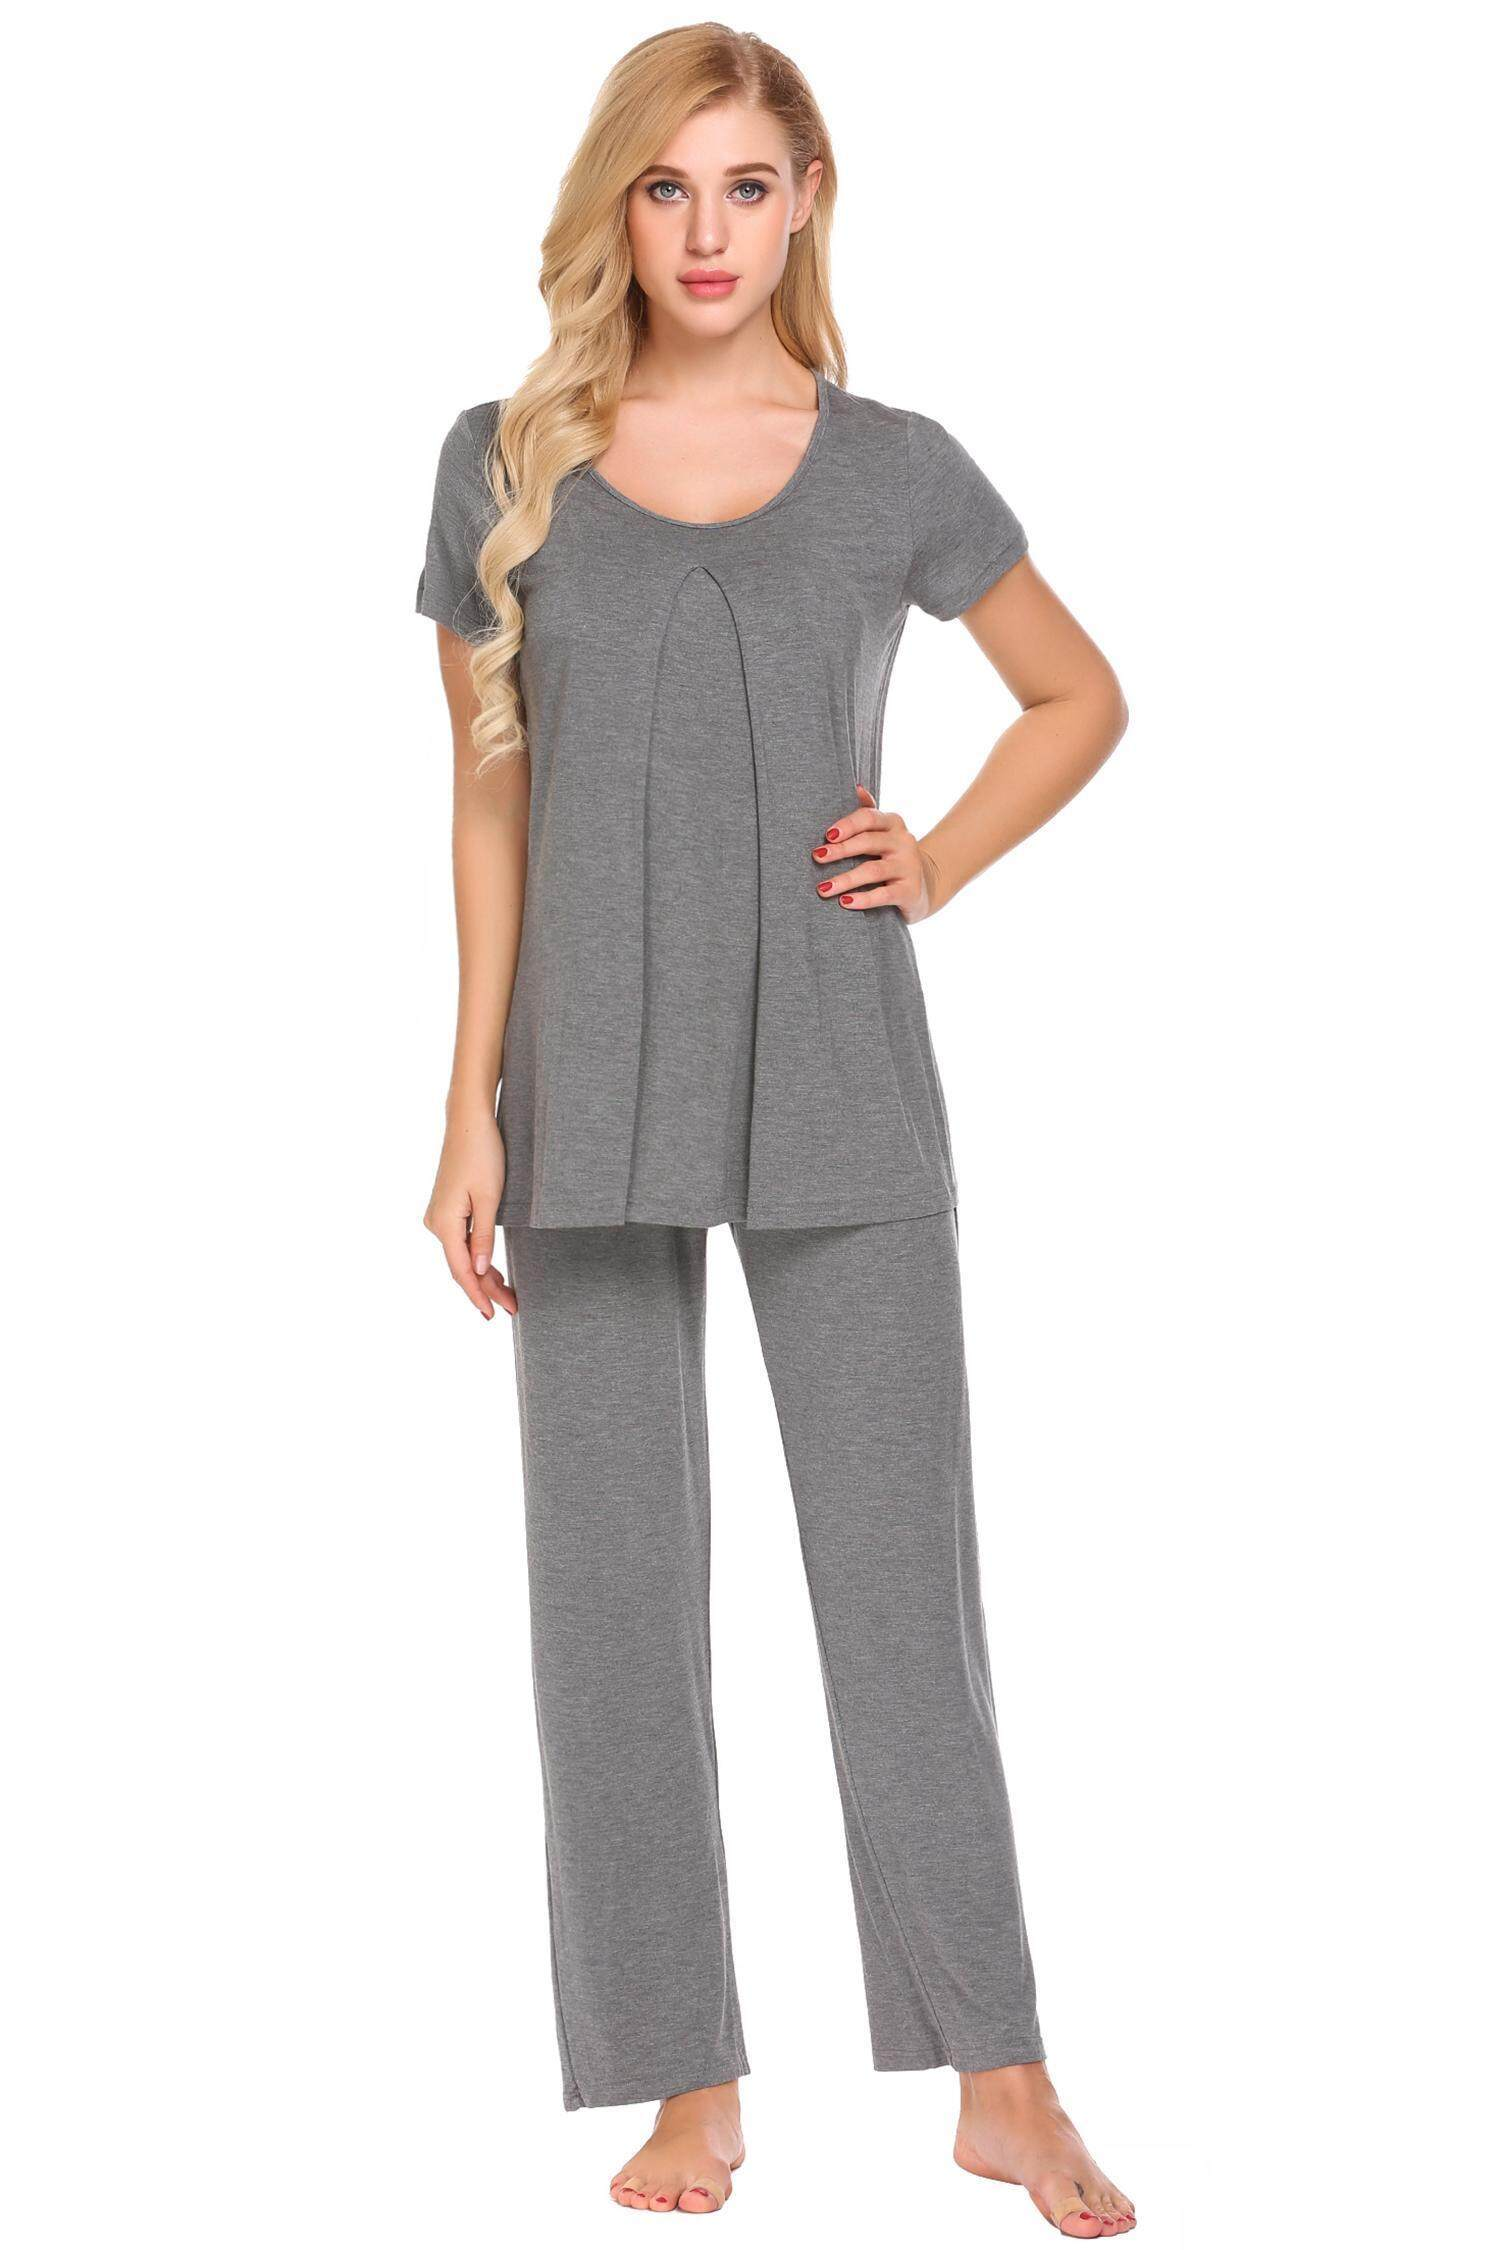 Purchase Best Seller Astar Maternity Sleepwear Short Sleeve Blouse Pants Nursing Pajama Set Intl Online